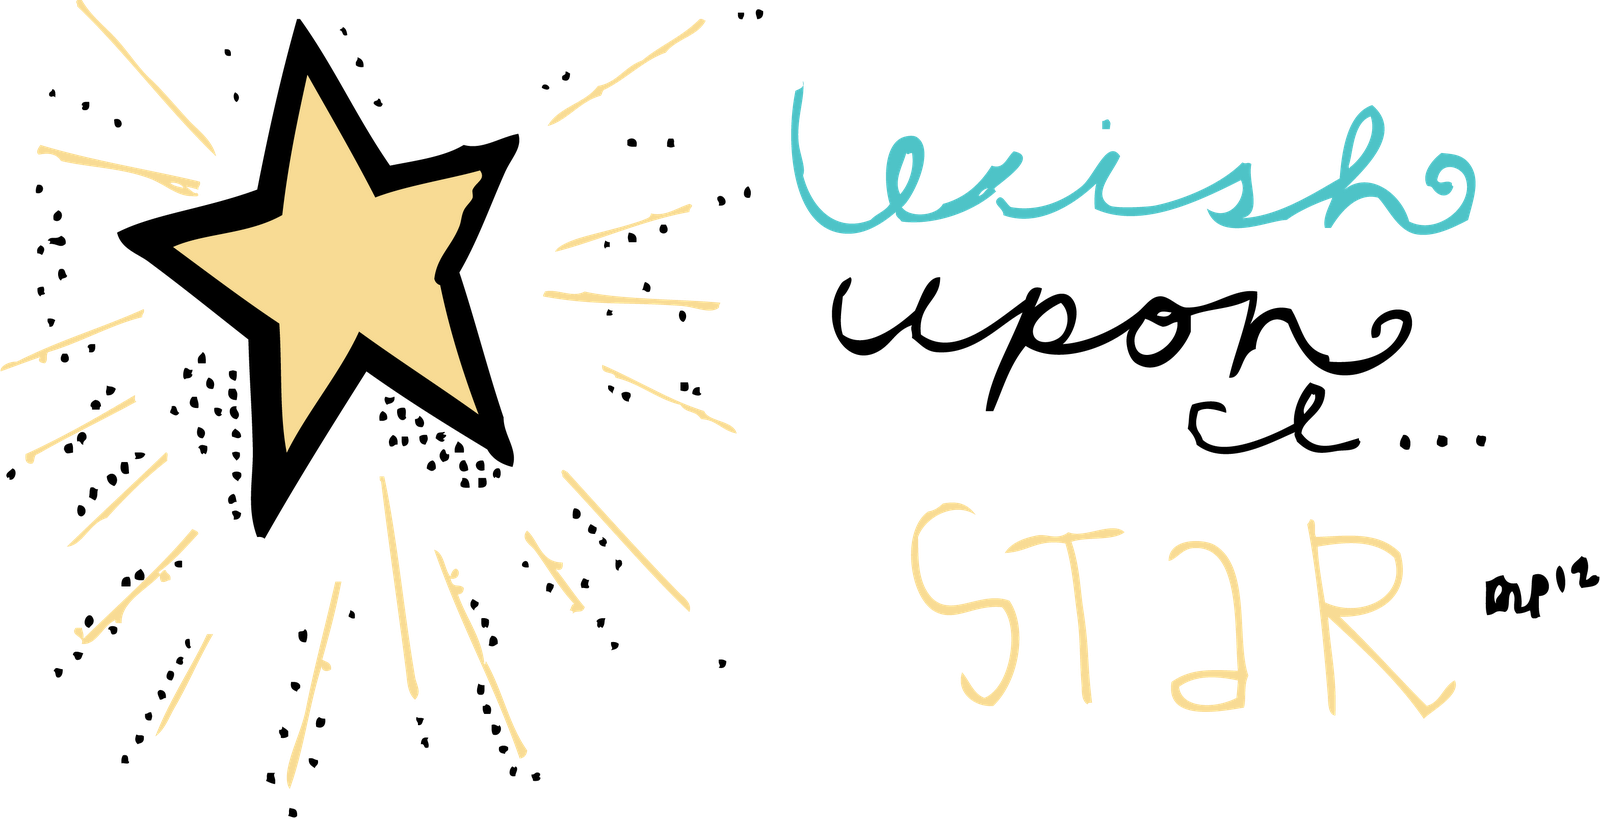 Wishing star clipart clip royalty free download Wish Upon A Star Clipart clip royalty free download